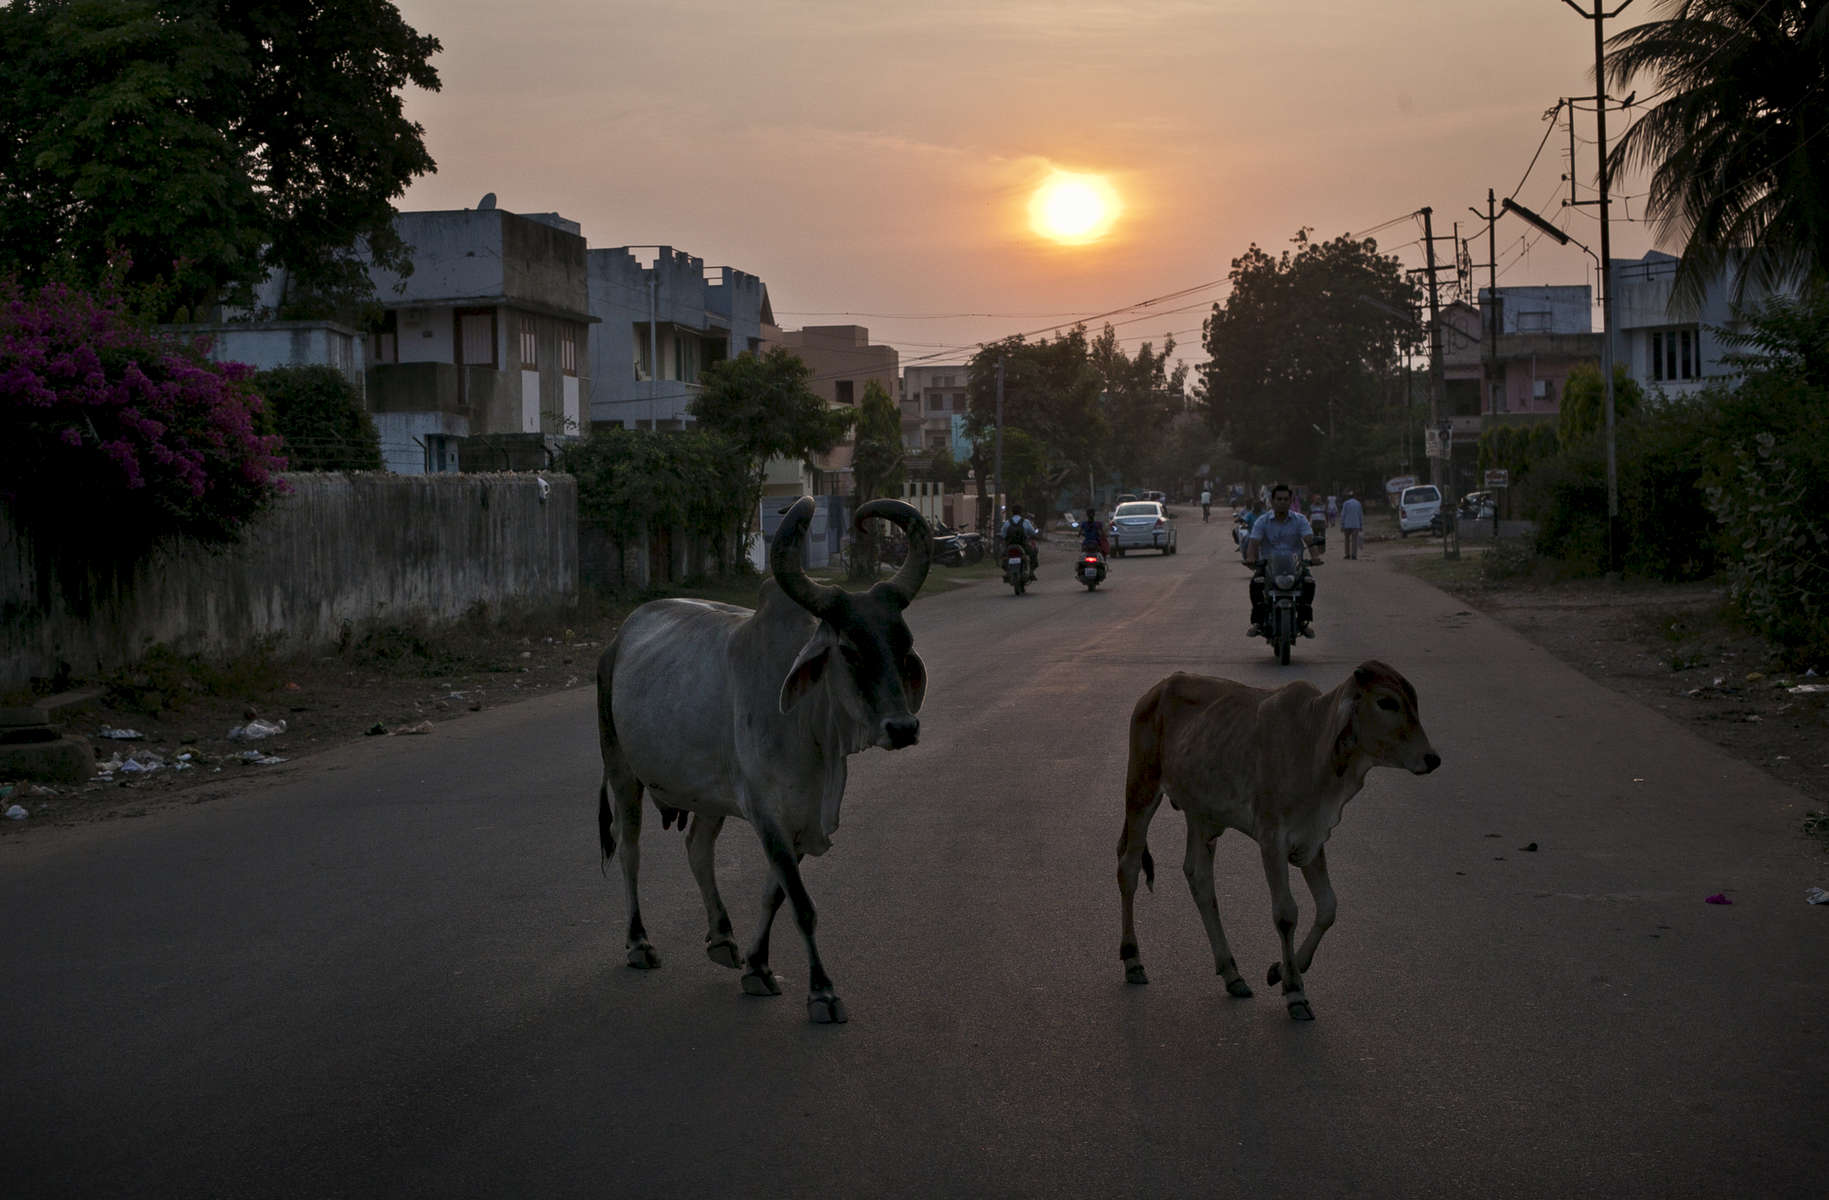 Cows walk down a street in Anand, India.